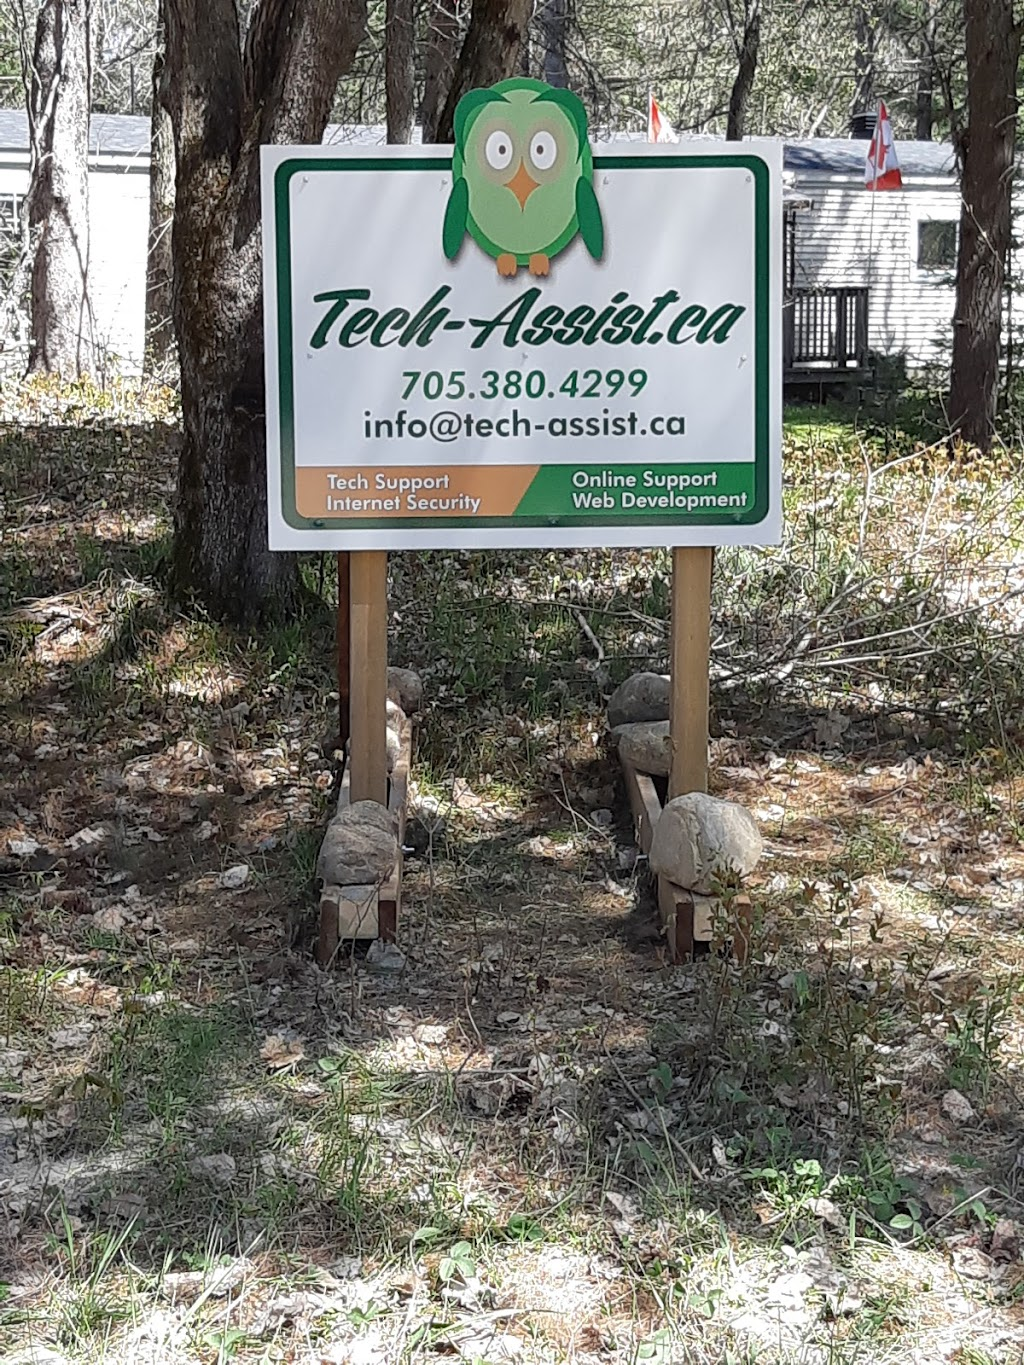 Tech-Assist.ca   point of interest   10 Wooden Bridge Rd, Emsdale, ON P0A 1J0, Canada   7053804299 OR +1 705-380-4299